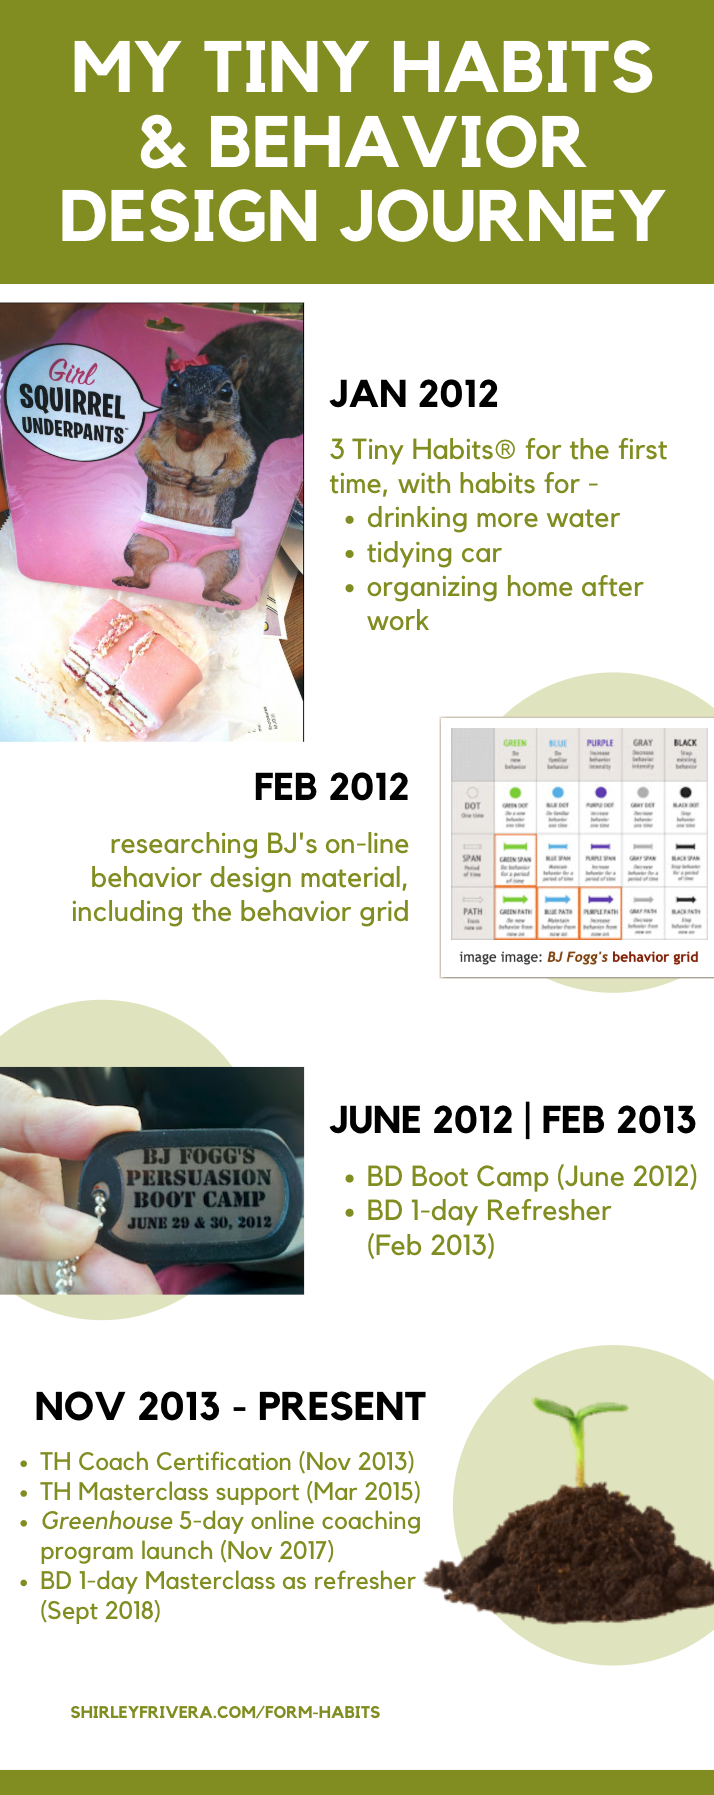 from drinking more water . . . to consulting, coaching, and mentoring - my Tiny Habits® and Behavior Design journey through the years -(external links below)* 5-day Tiny Habits program* BJ Fogg's Behavior Grid* Behavior Design Boot Camp* Tiny Habits Certified Coachingand specialty areas I cultivate and pursue by applying Tiny Habits and Behavior Design include -* Environmental Health & Safety* Servant Leadership* Professional Development * Improv Habits Mindset* Equity